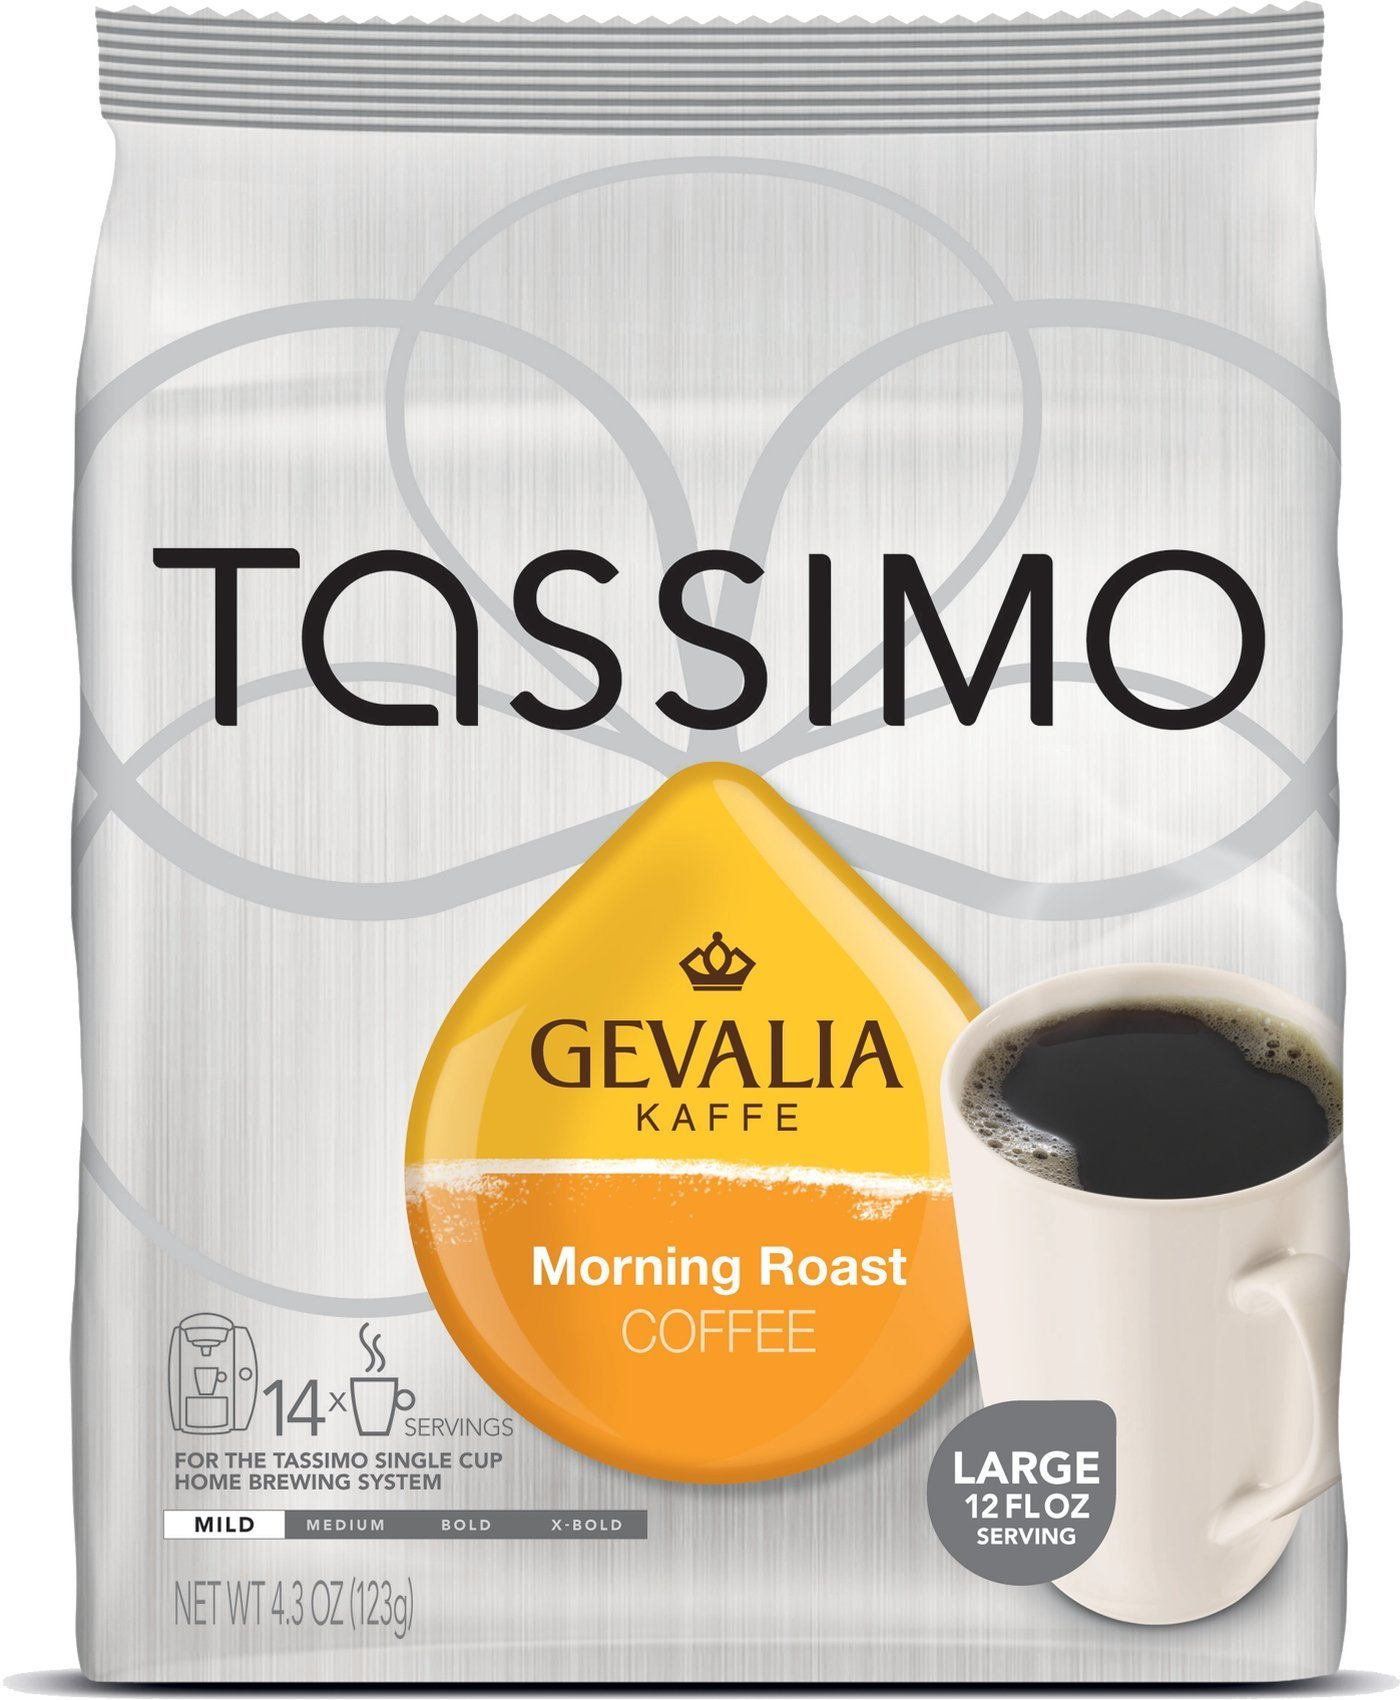 Gevalia Morning Roast, 14-Count T-Discs for Tassimo Single Cup Brewing systems - [3 pack] by Gevalia